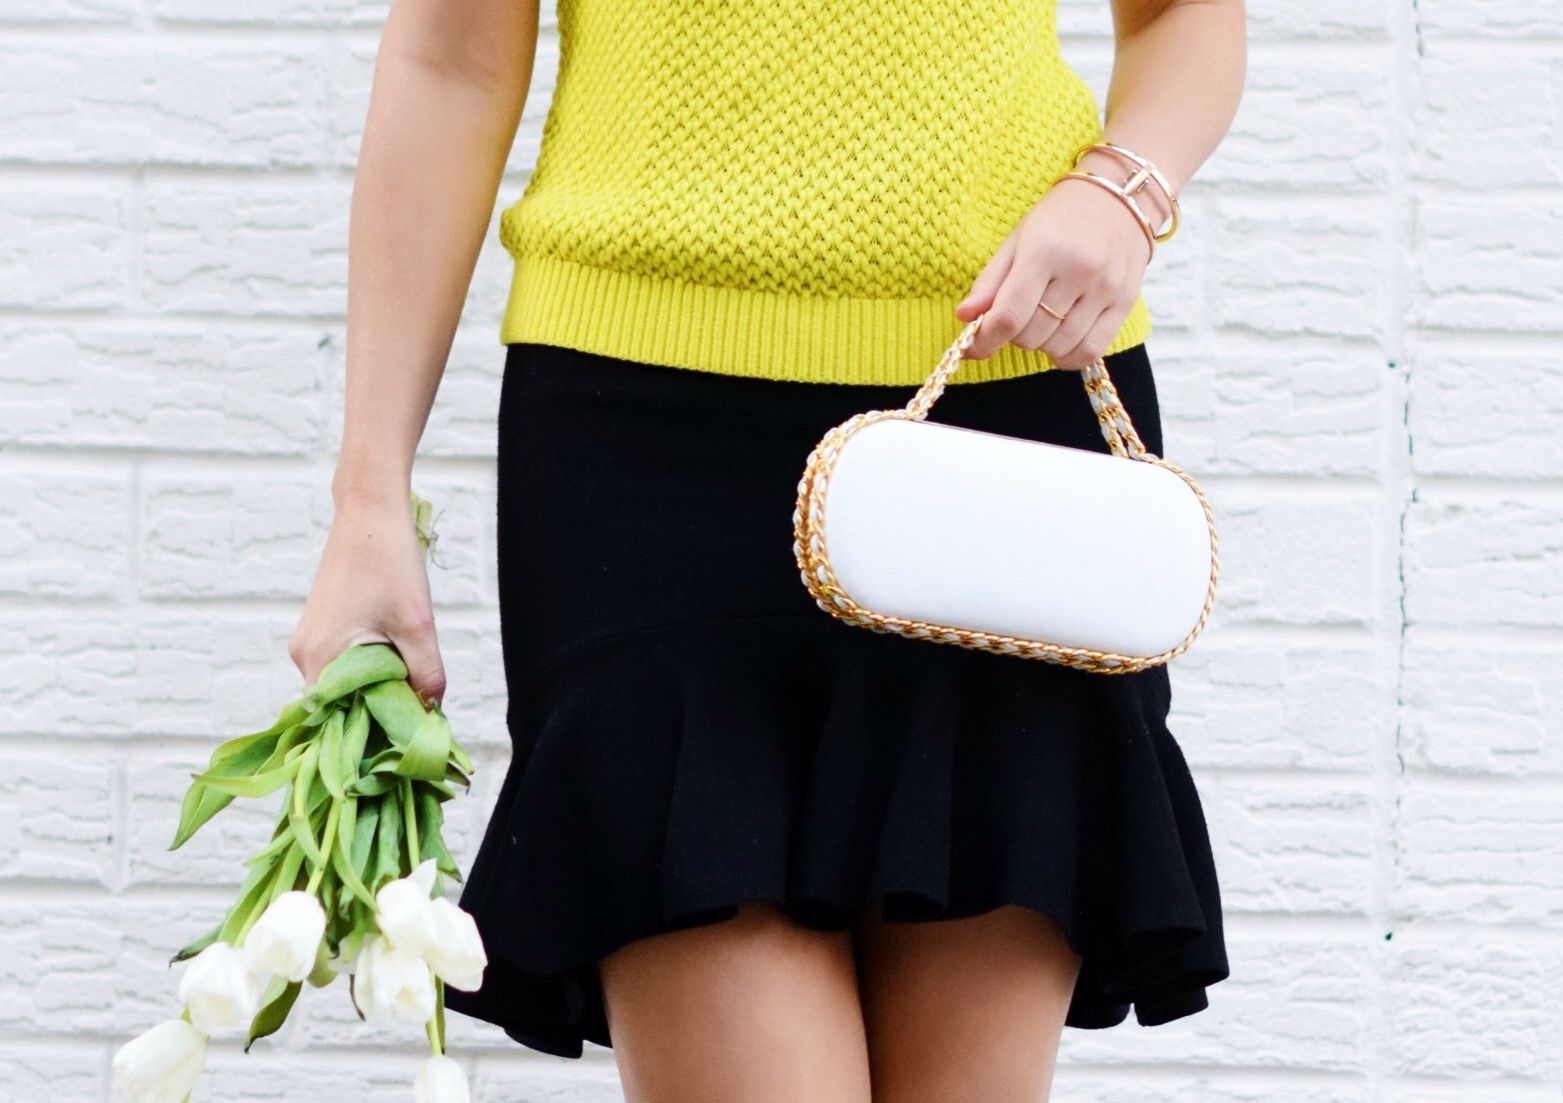 White Prince Minaudiere Erin Dana Louboutins & Love Fashion Blog Esther Santer NYC Street Style Blogger Bag Giveaway Gold Jewelry Lydell Bracelet Collar Necklace Black Booties Flared Ruffle Skirt Photoshoot Model Neon Yellow Sweater Club Monaco Outfit.jpg